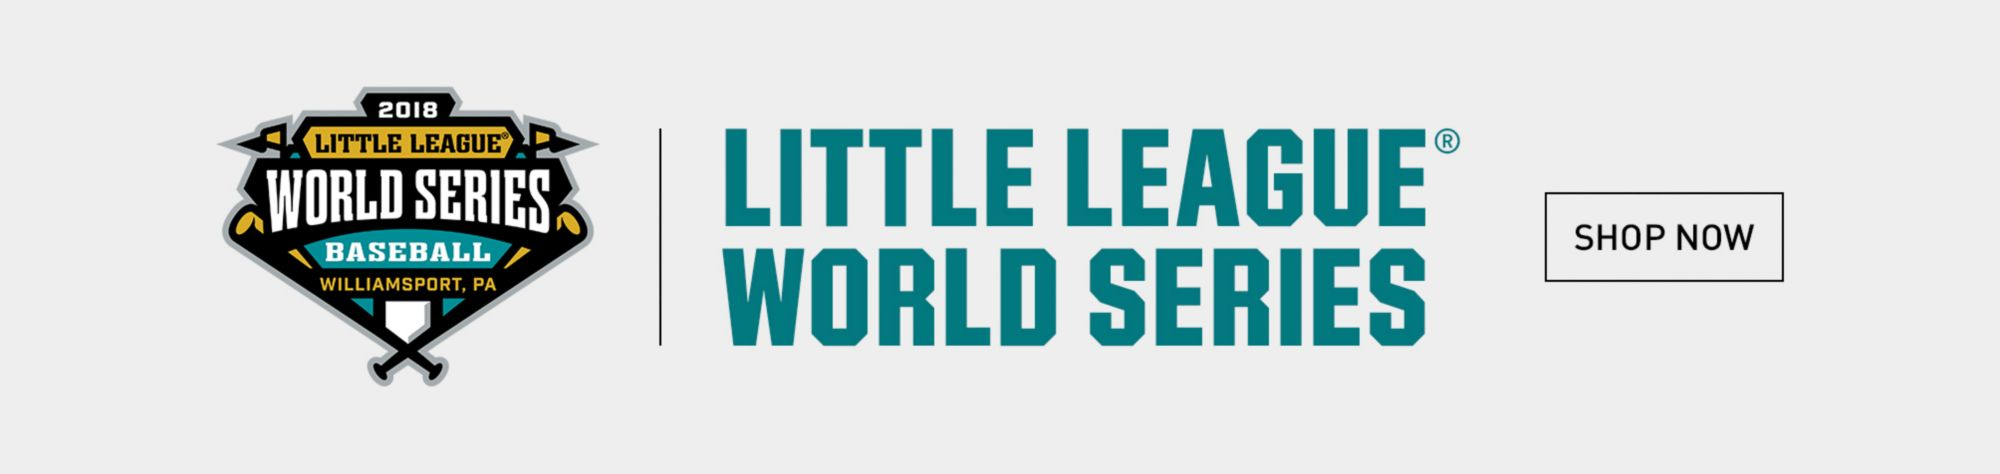 Little League World Series: Shop Now